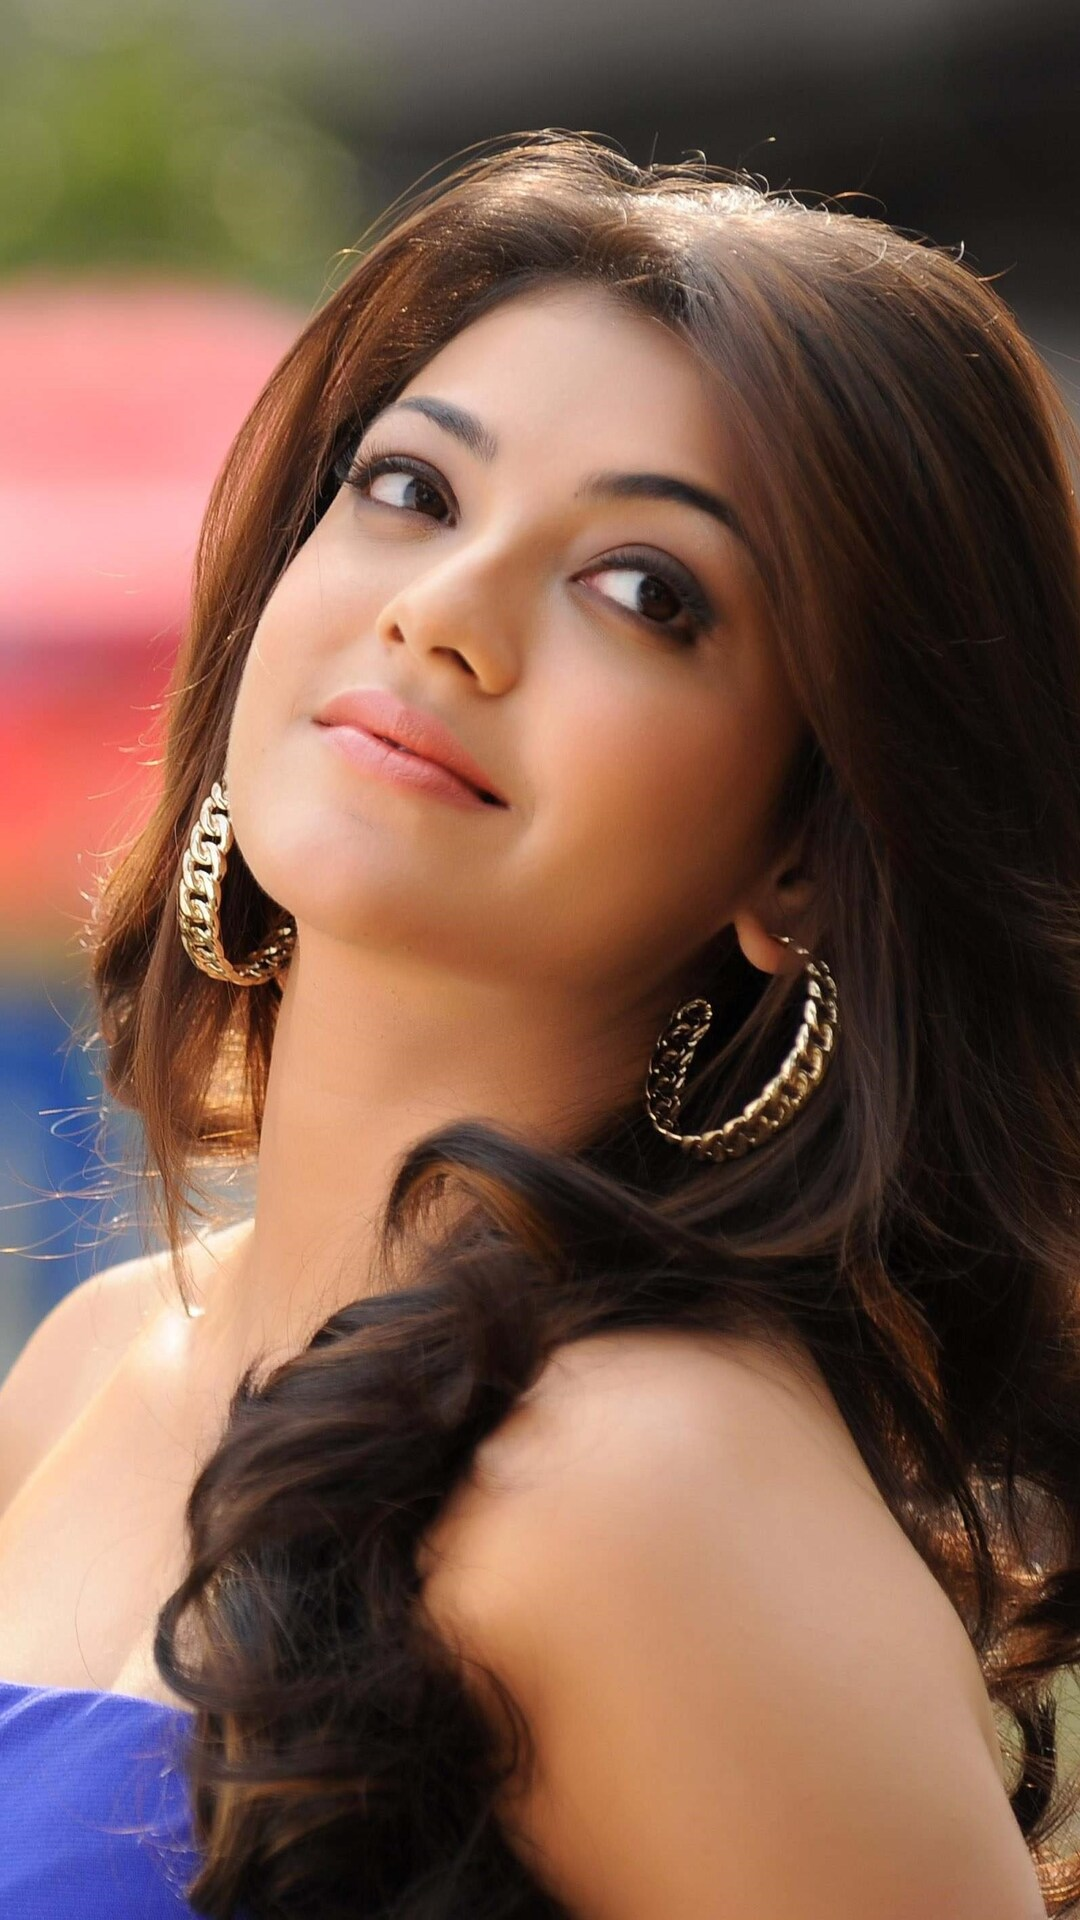 kajal-agarwal-2016-wallpaper.jpg